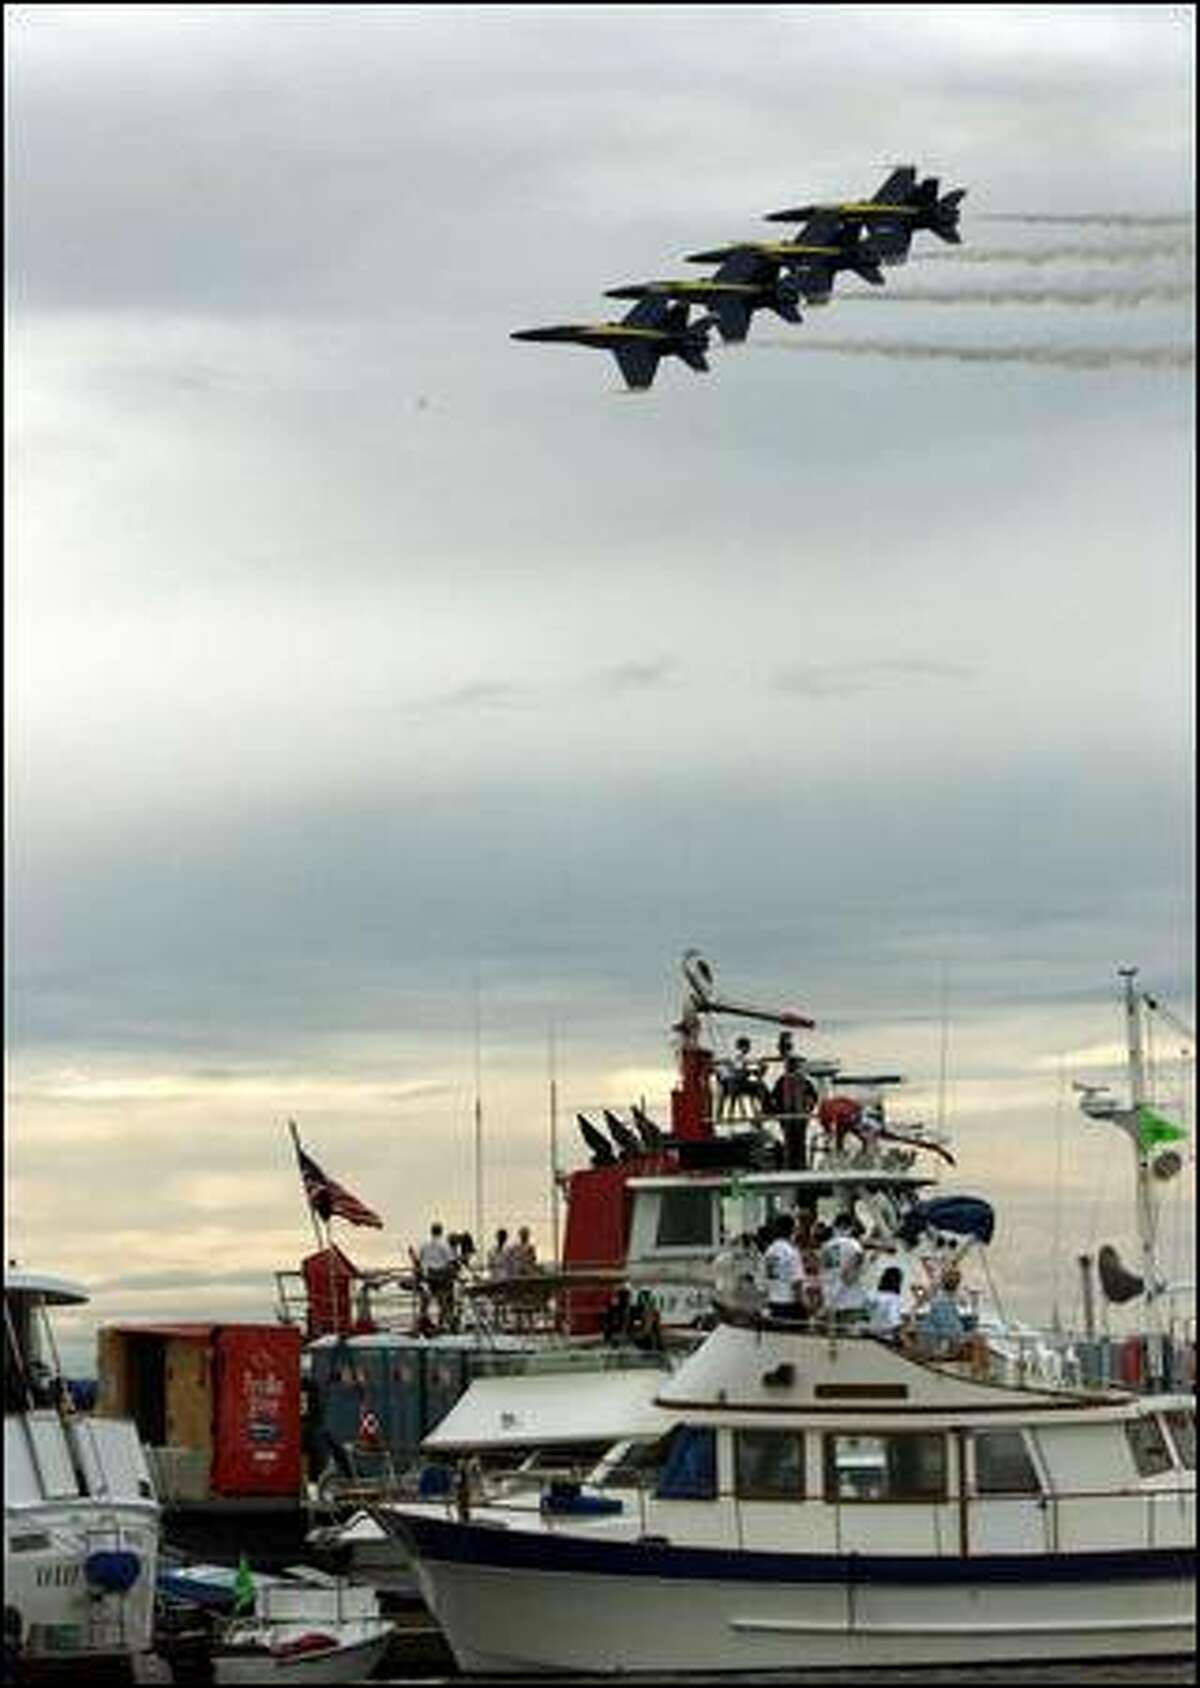 The Blue Angels entertain spectators aboard boats on Lake Washington as part of the Seafair festivities.